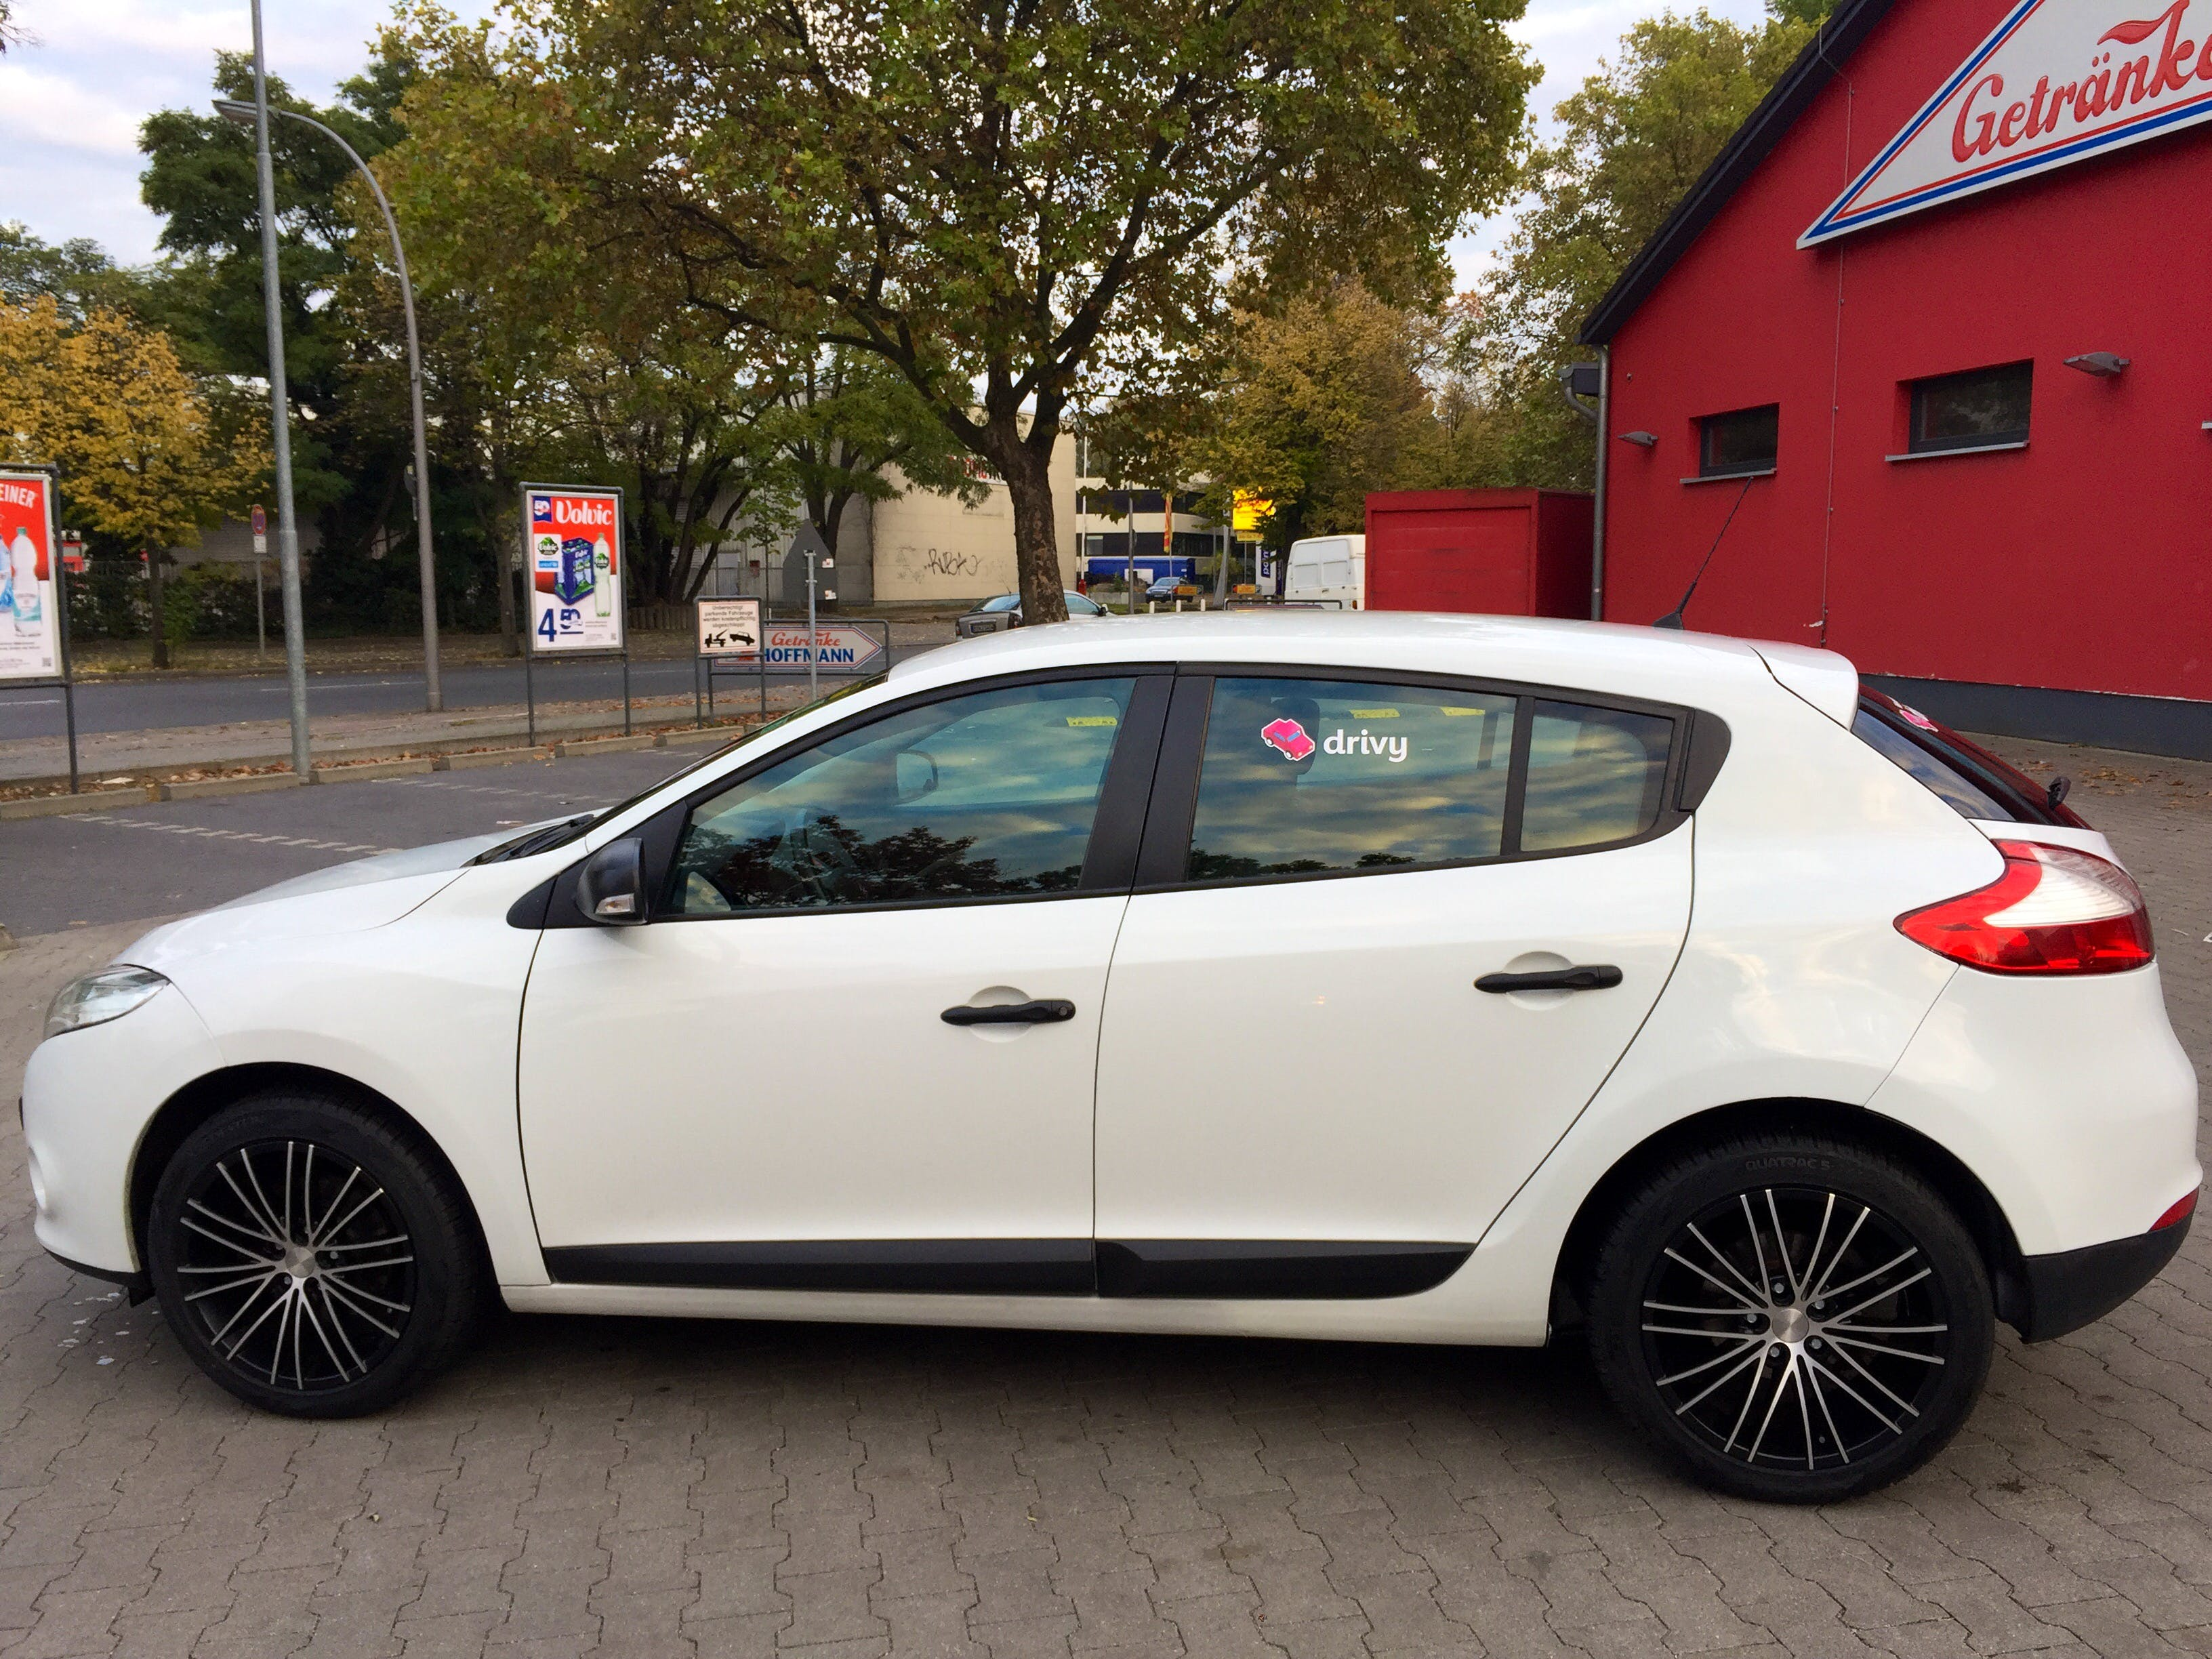 Renault Mégane ||| Classic 1.6 16V mit CD-Player